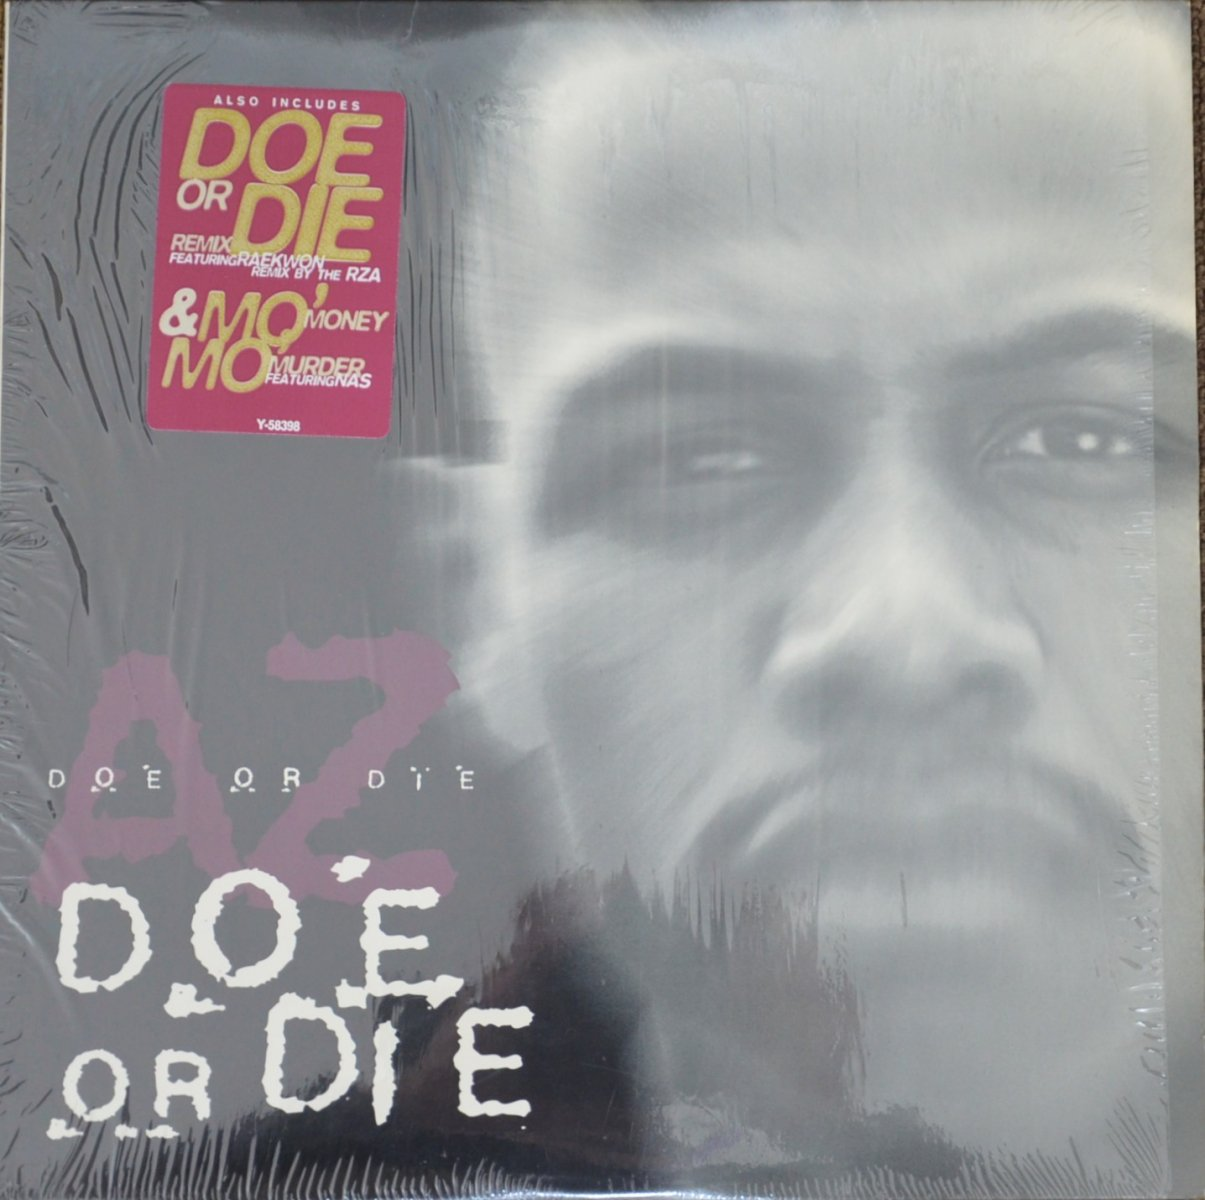 AZ / DOE OR DIE / MO MONEY, MO MURDER